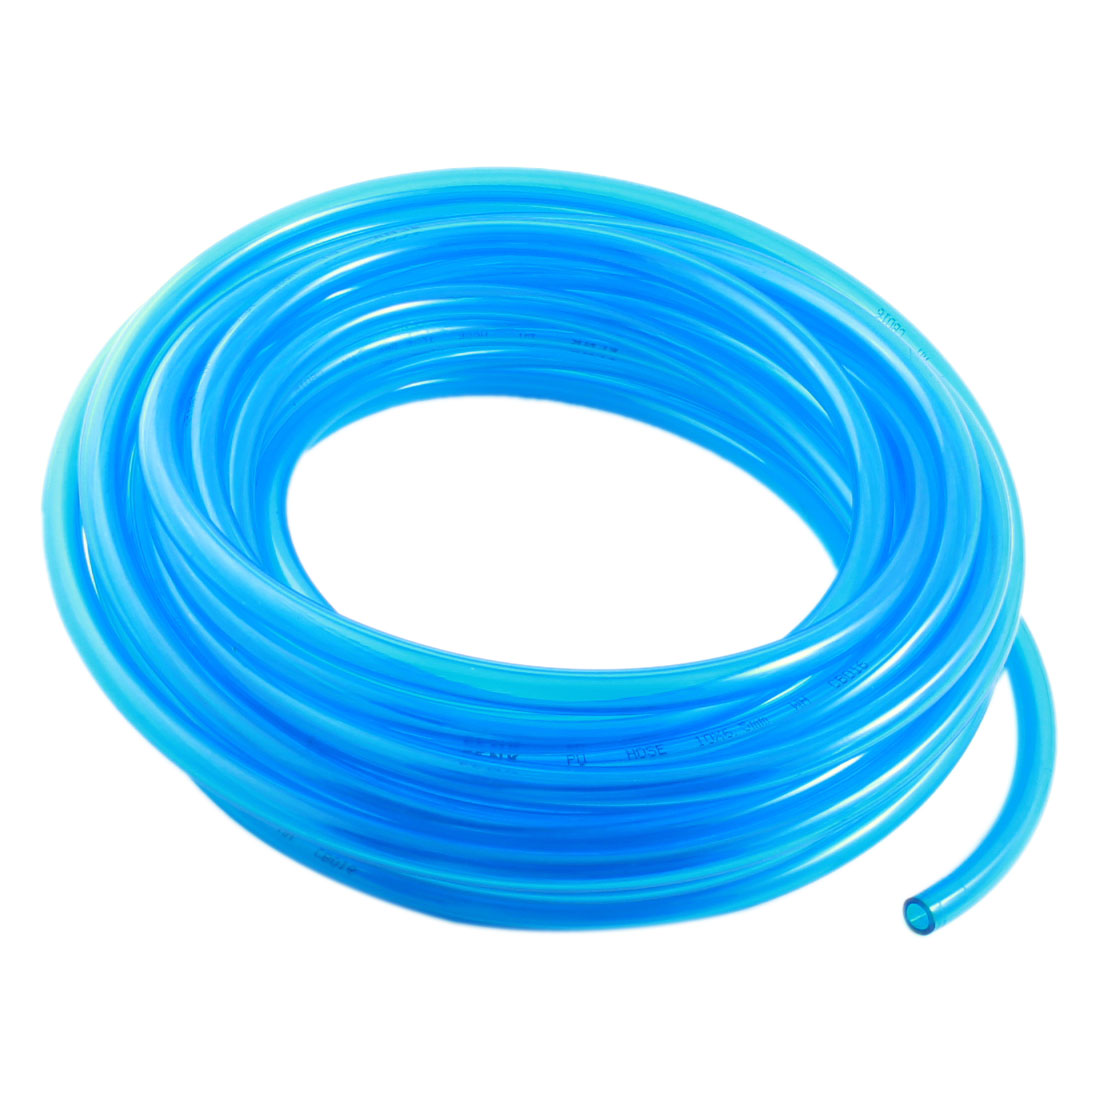 Pneumatic 6.5x10mm Gas Quick Fittings Connection PU Line Tube 10M Clear Blue